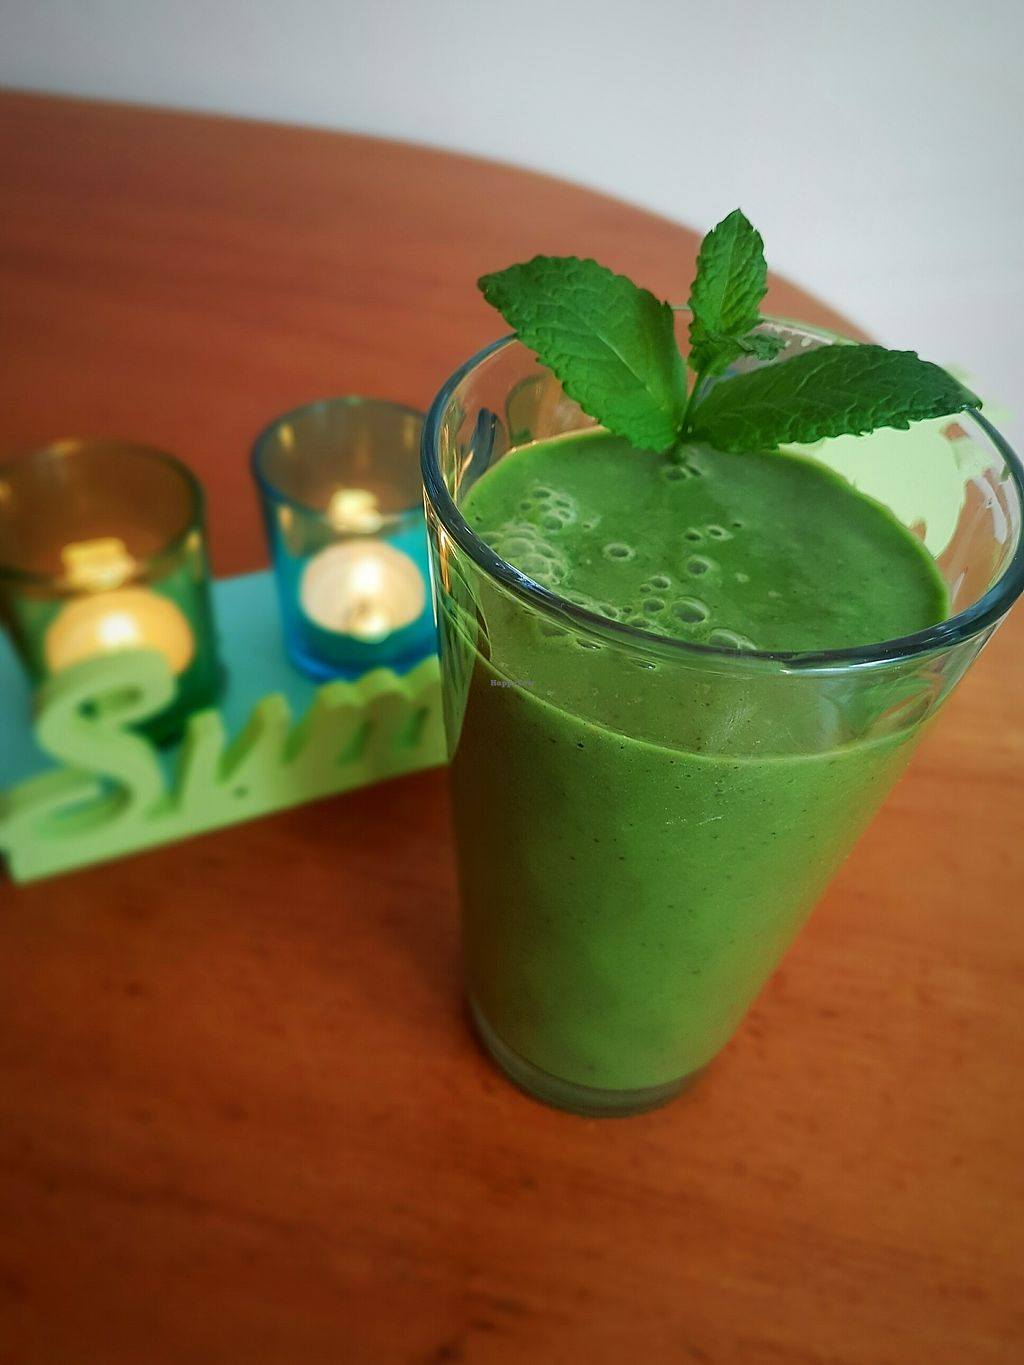 """Photo of Amrutha Lounge   by <a href=""""/members/profile/YouAreWhatYouEat"""">YouAreWhatYouEat</a> <br/>Green smoothie  <br/> February 20, 2018  - <a href='/contact/abuse/image/112580/361523'>Report</a>"""